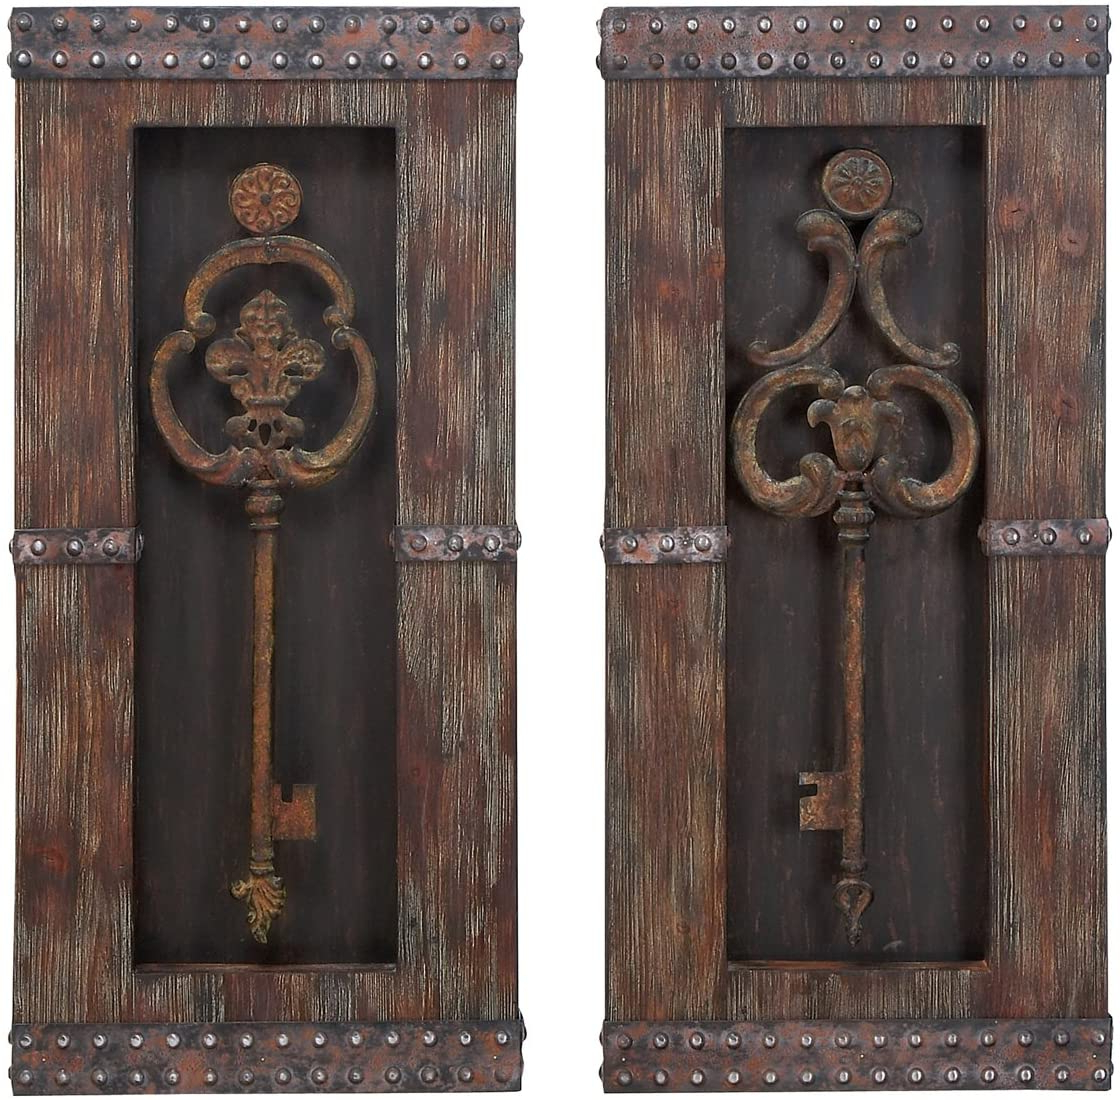 Widely Used Urban Designs 2 Piece Vintage Metal Keys Wall Art Decor Set, Brown In Key Wall Décor (set Of 2) (View 3 of 20)